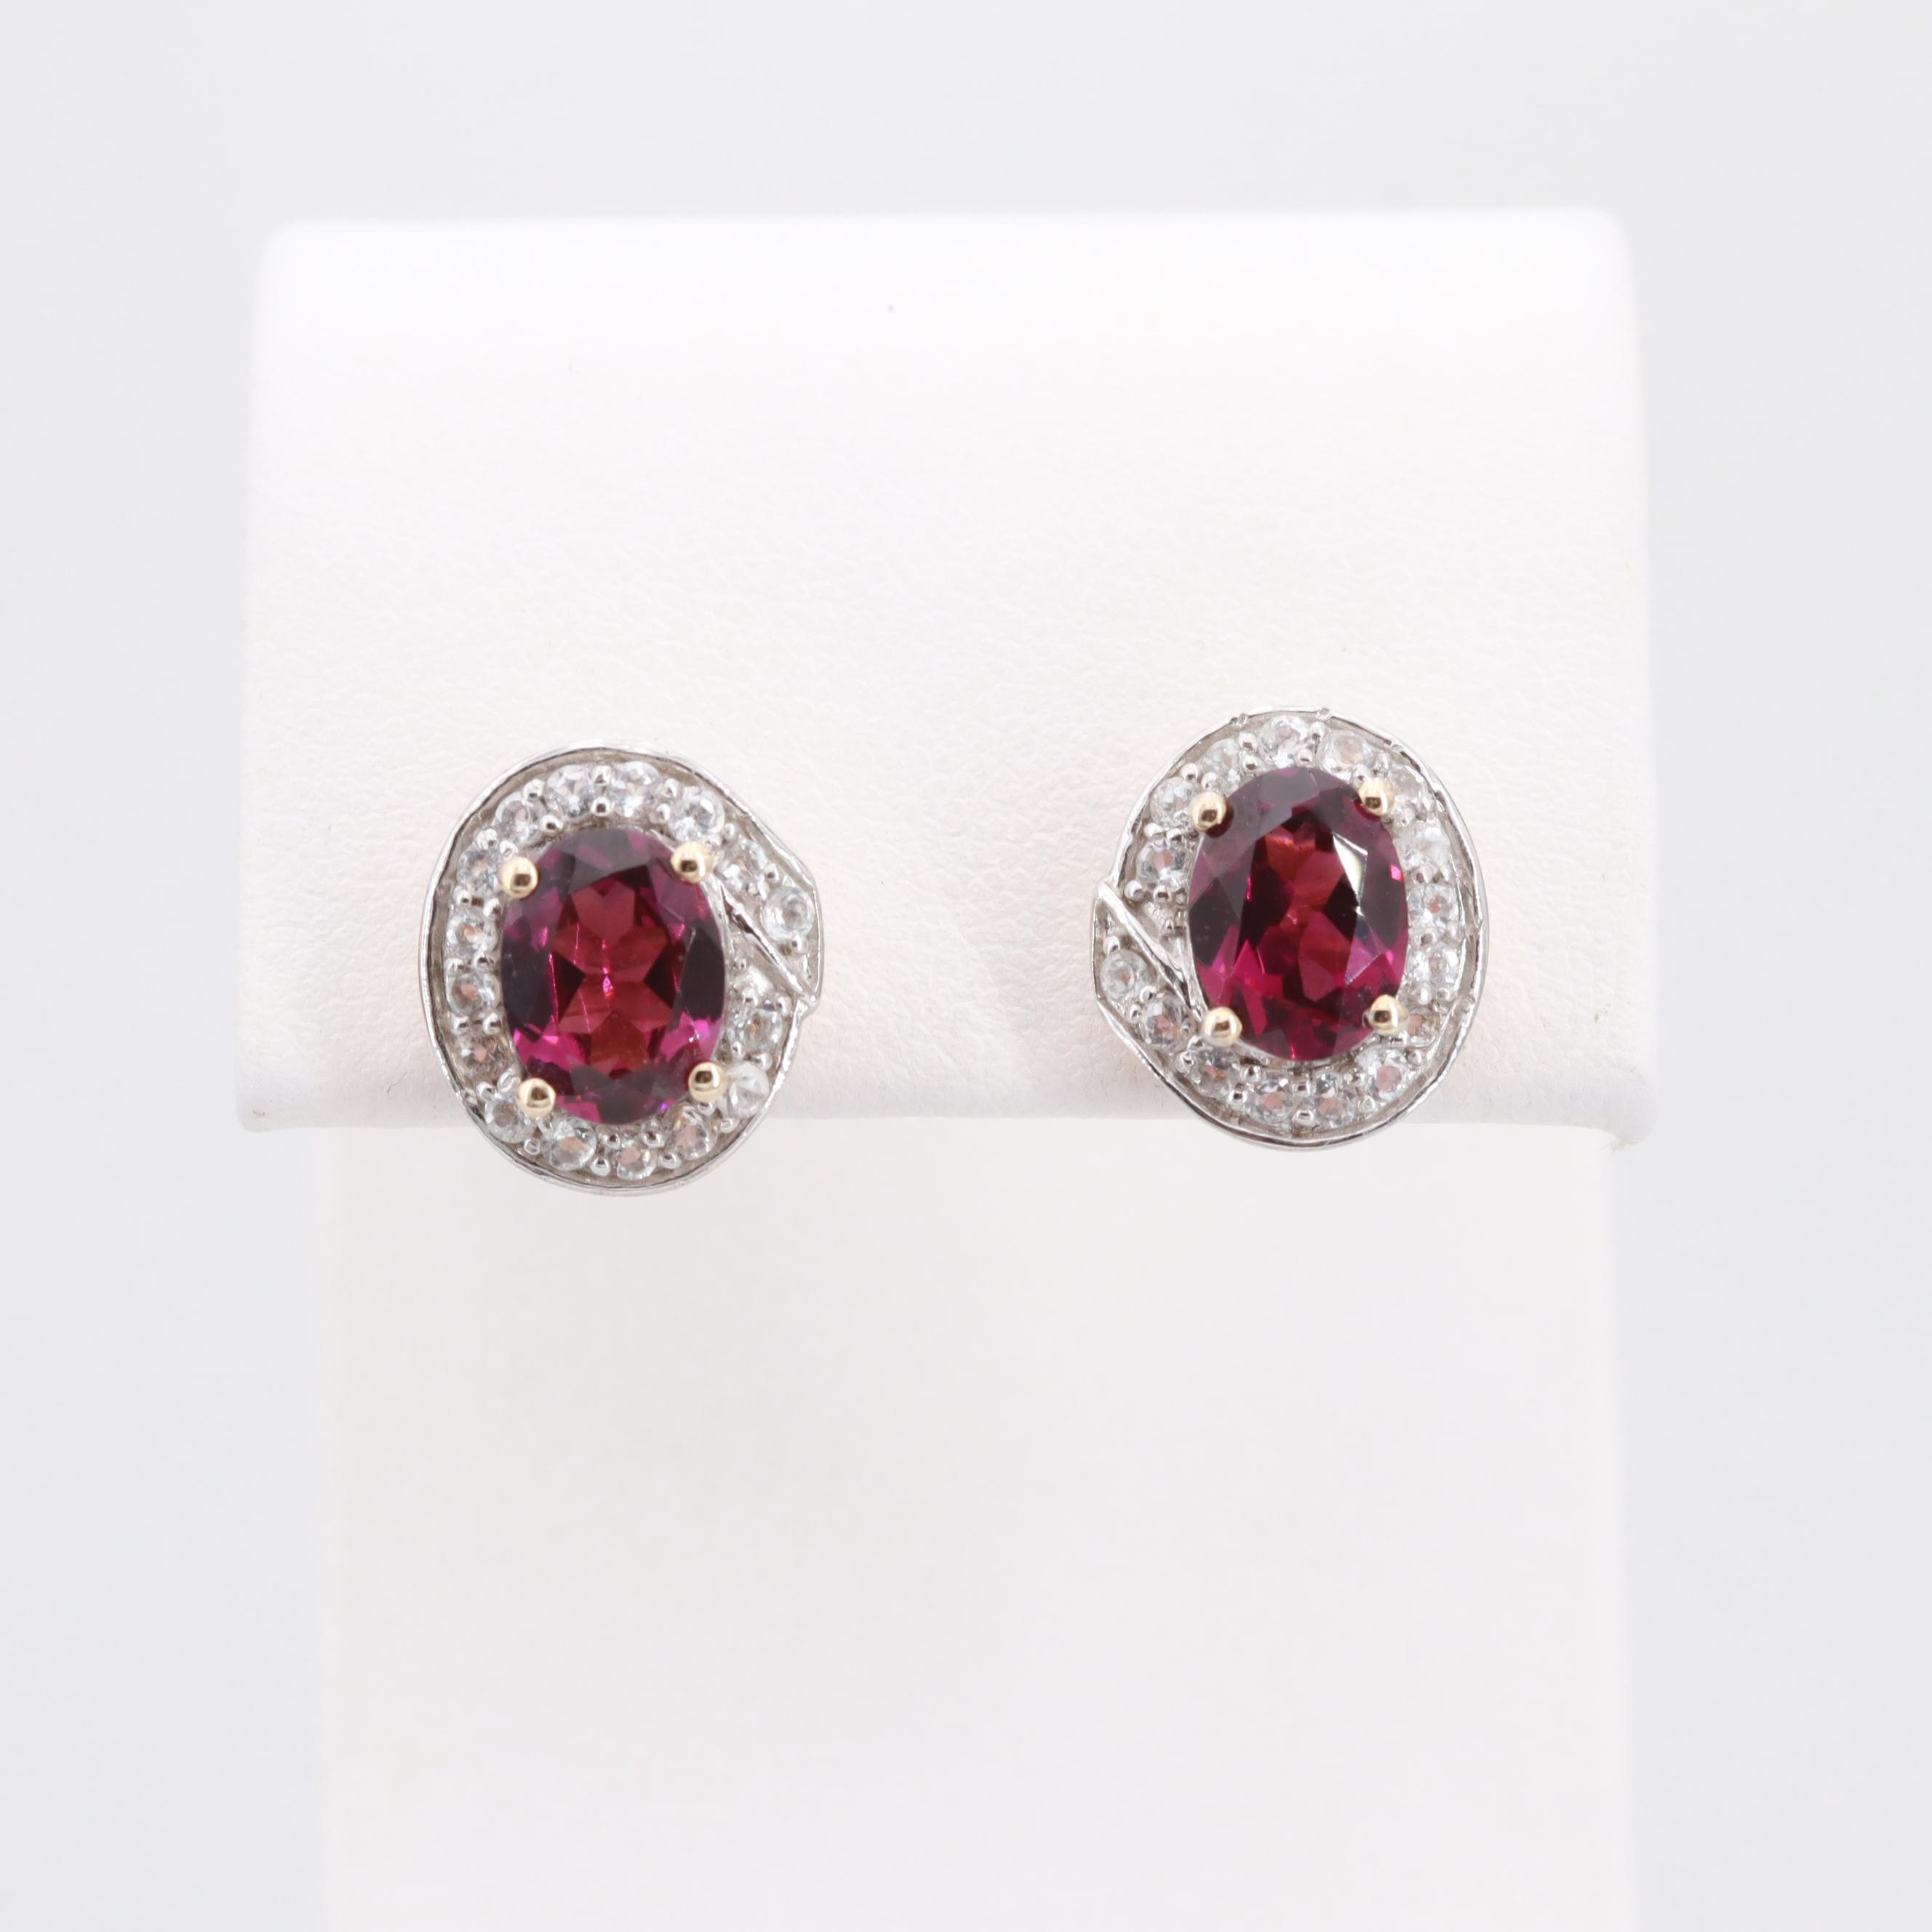 10K Yellow Gold Rhodolite Garnet and Synthetic Spinel Earrings